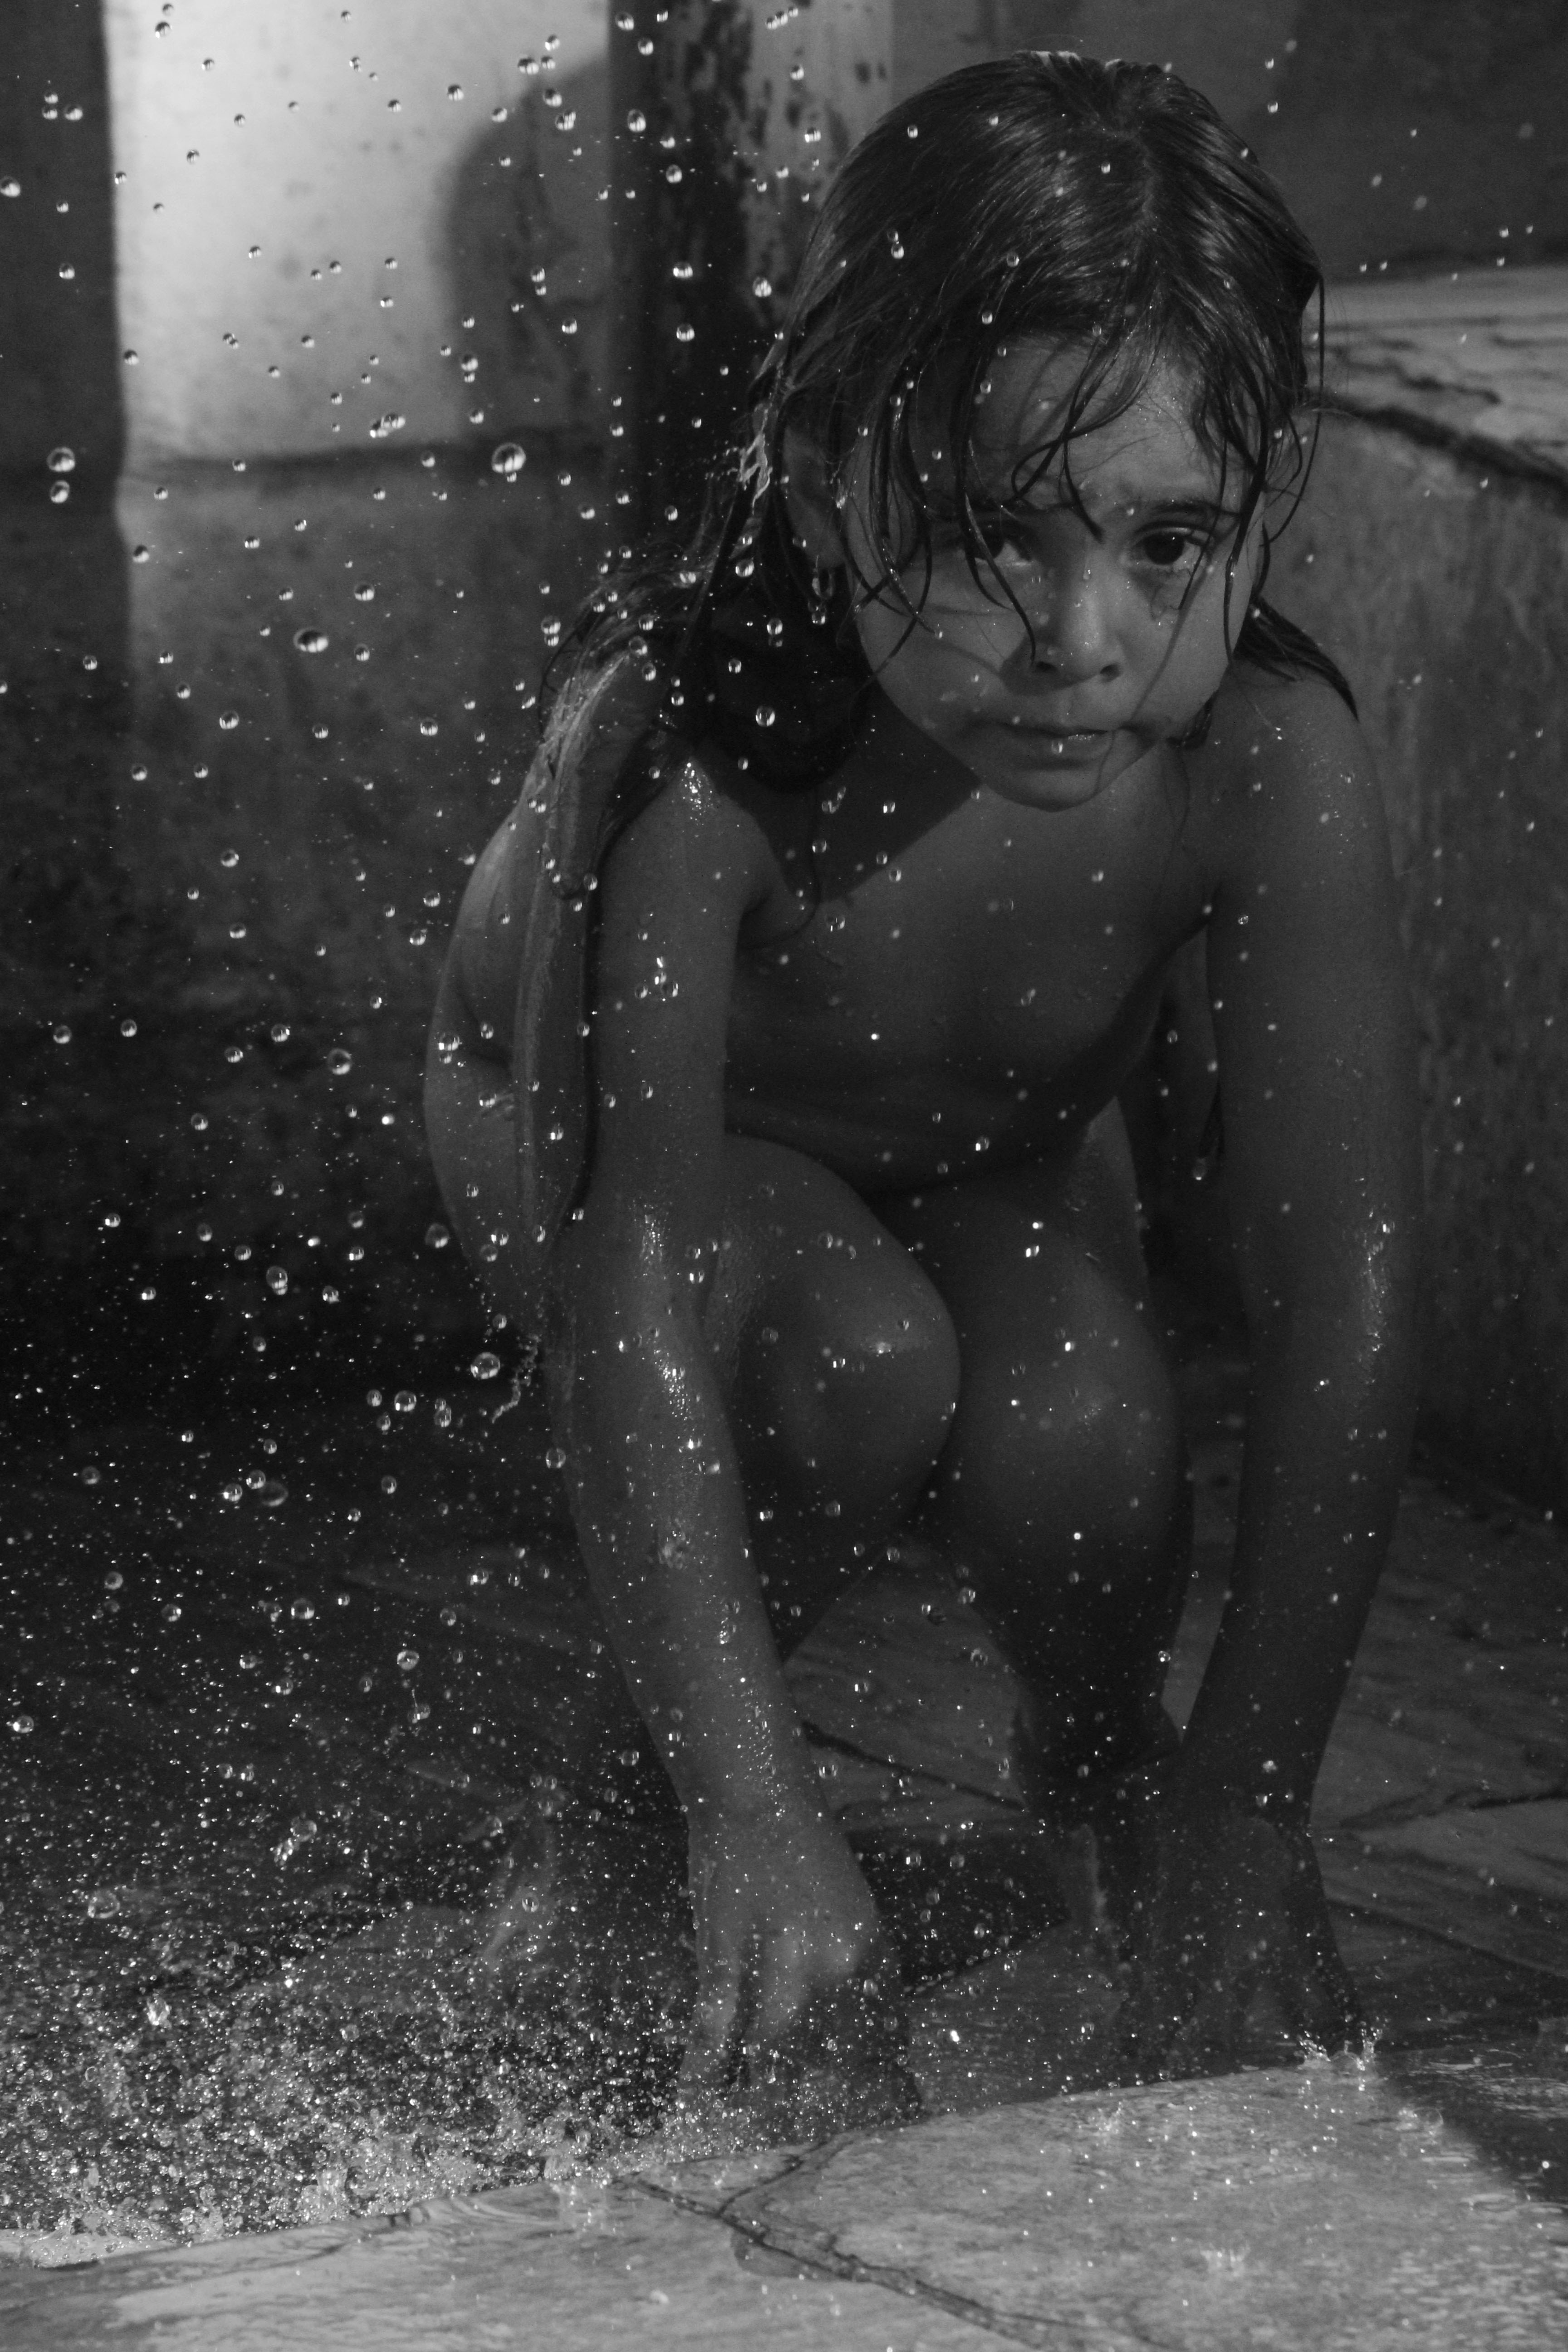 The girl and the drops